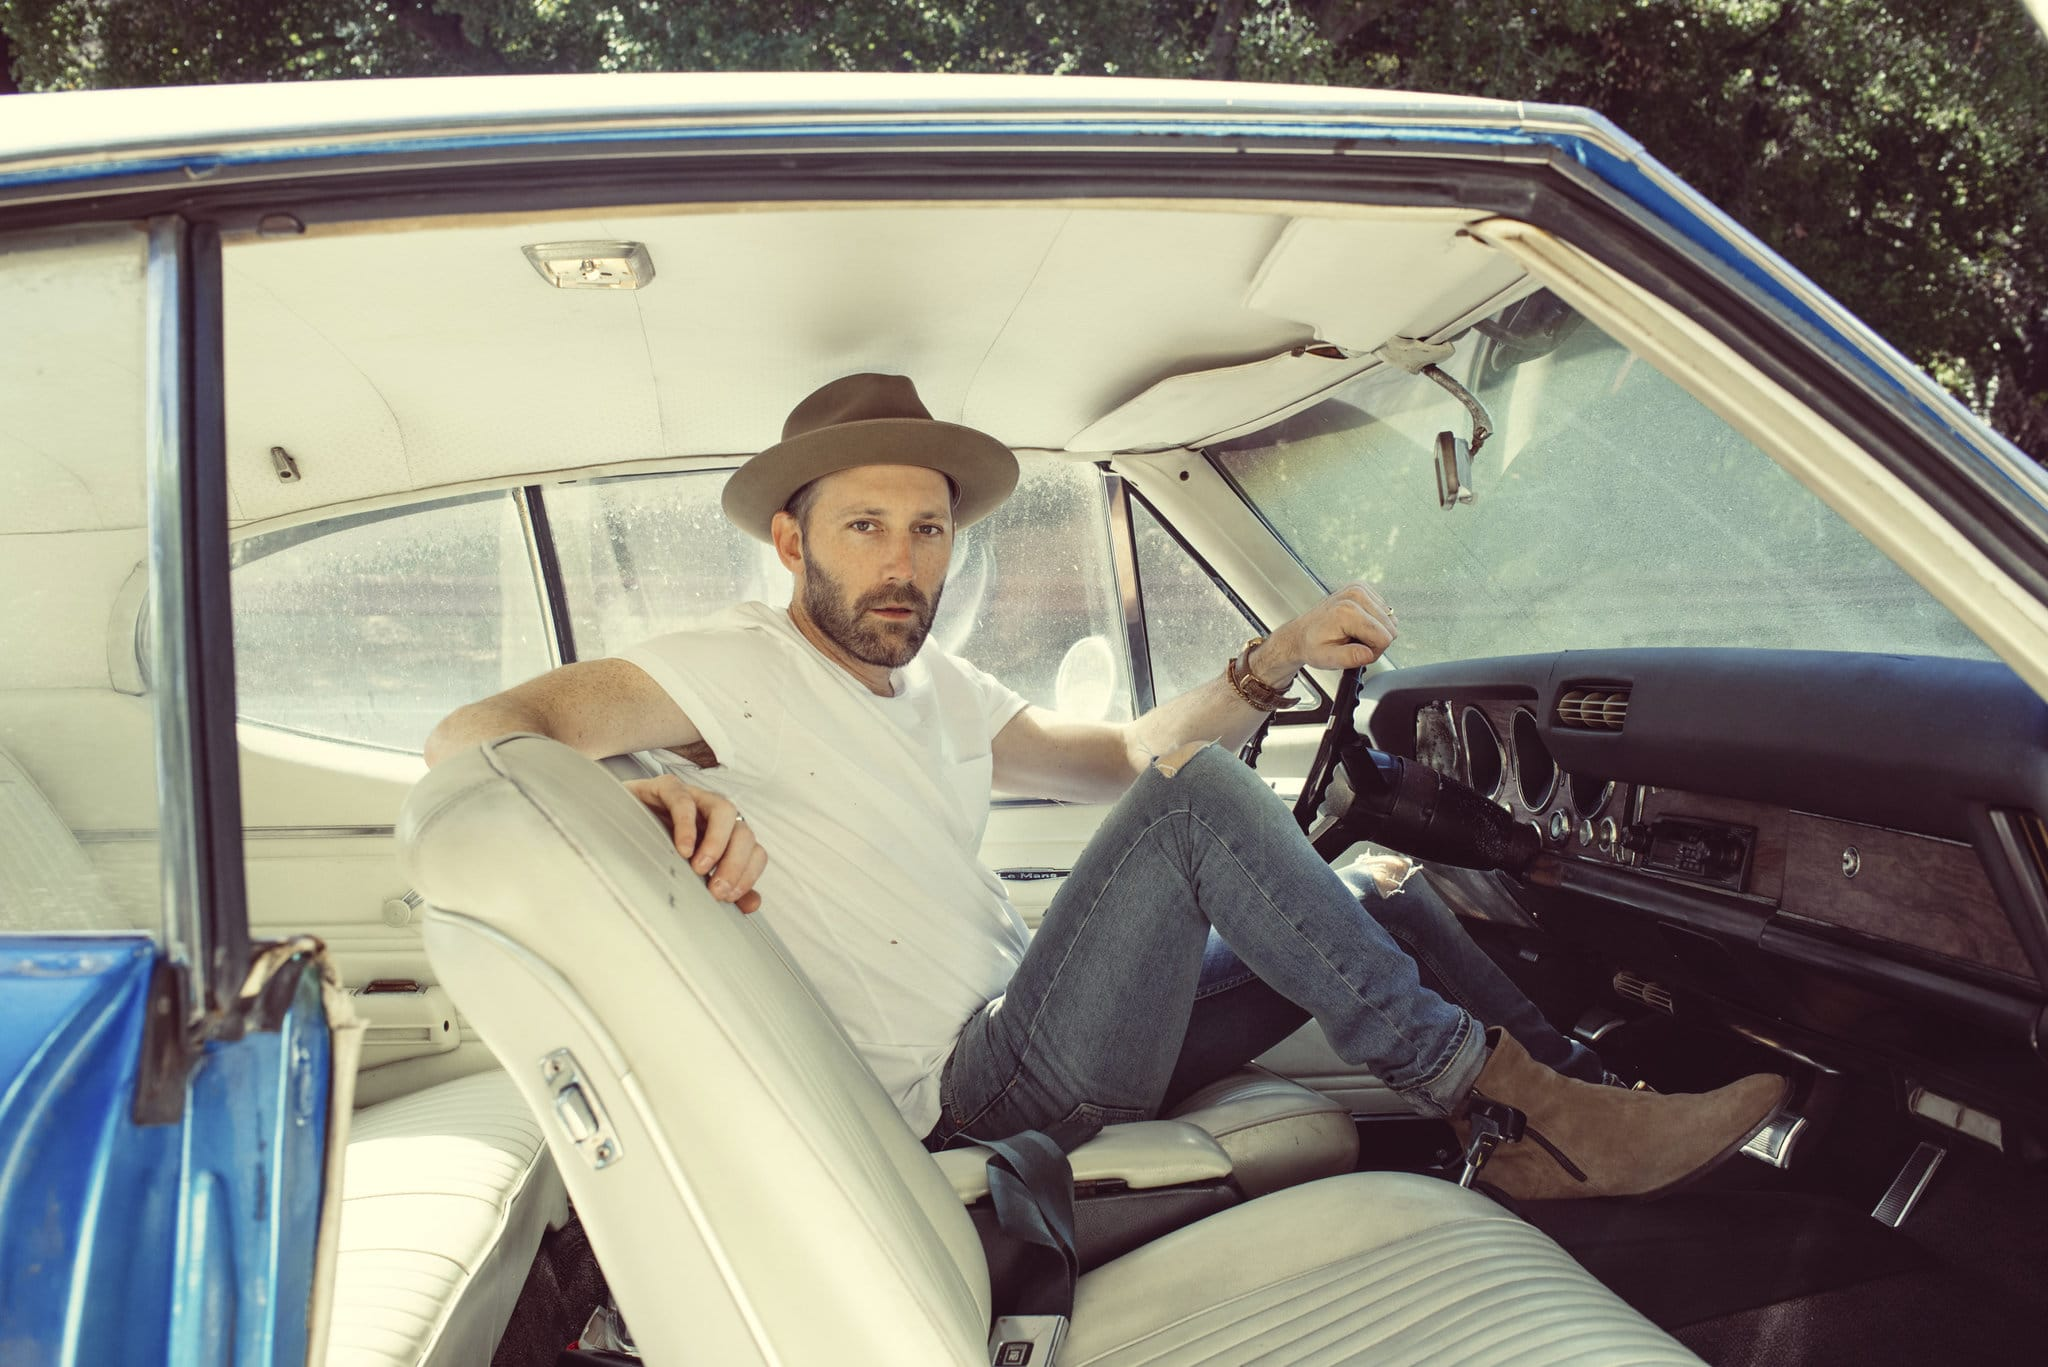 """Mat Kearney was one of Sam's favorite artists. She actually recorded his song """"On and On"""" for Nikki! Mat also gave a benefit concert for Sam's Fans in 2018."""